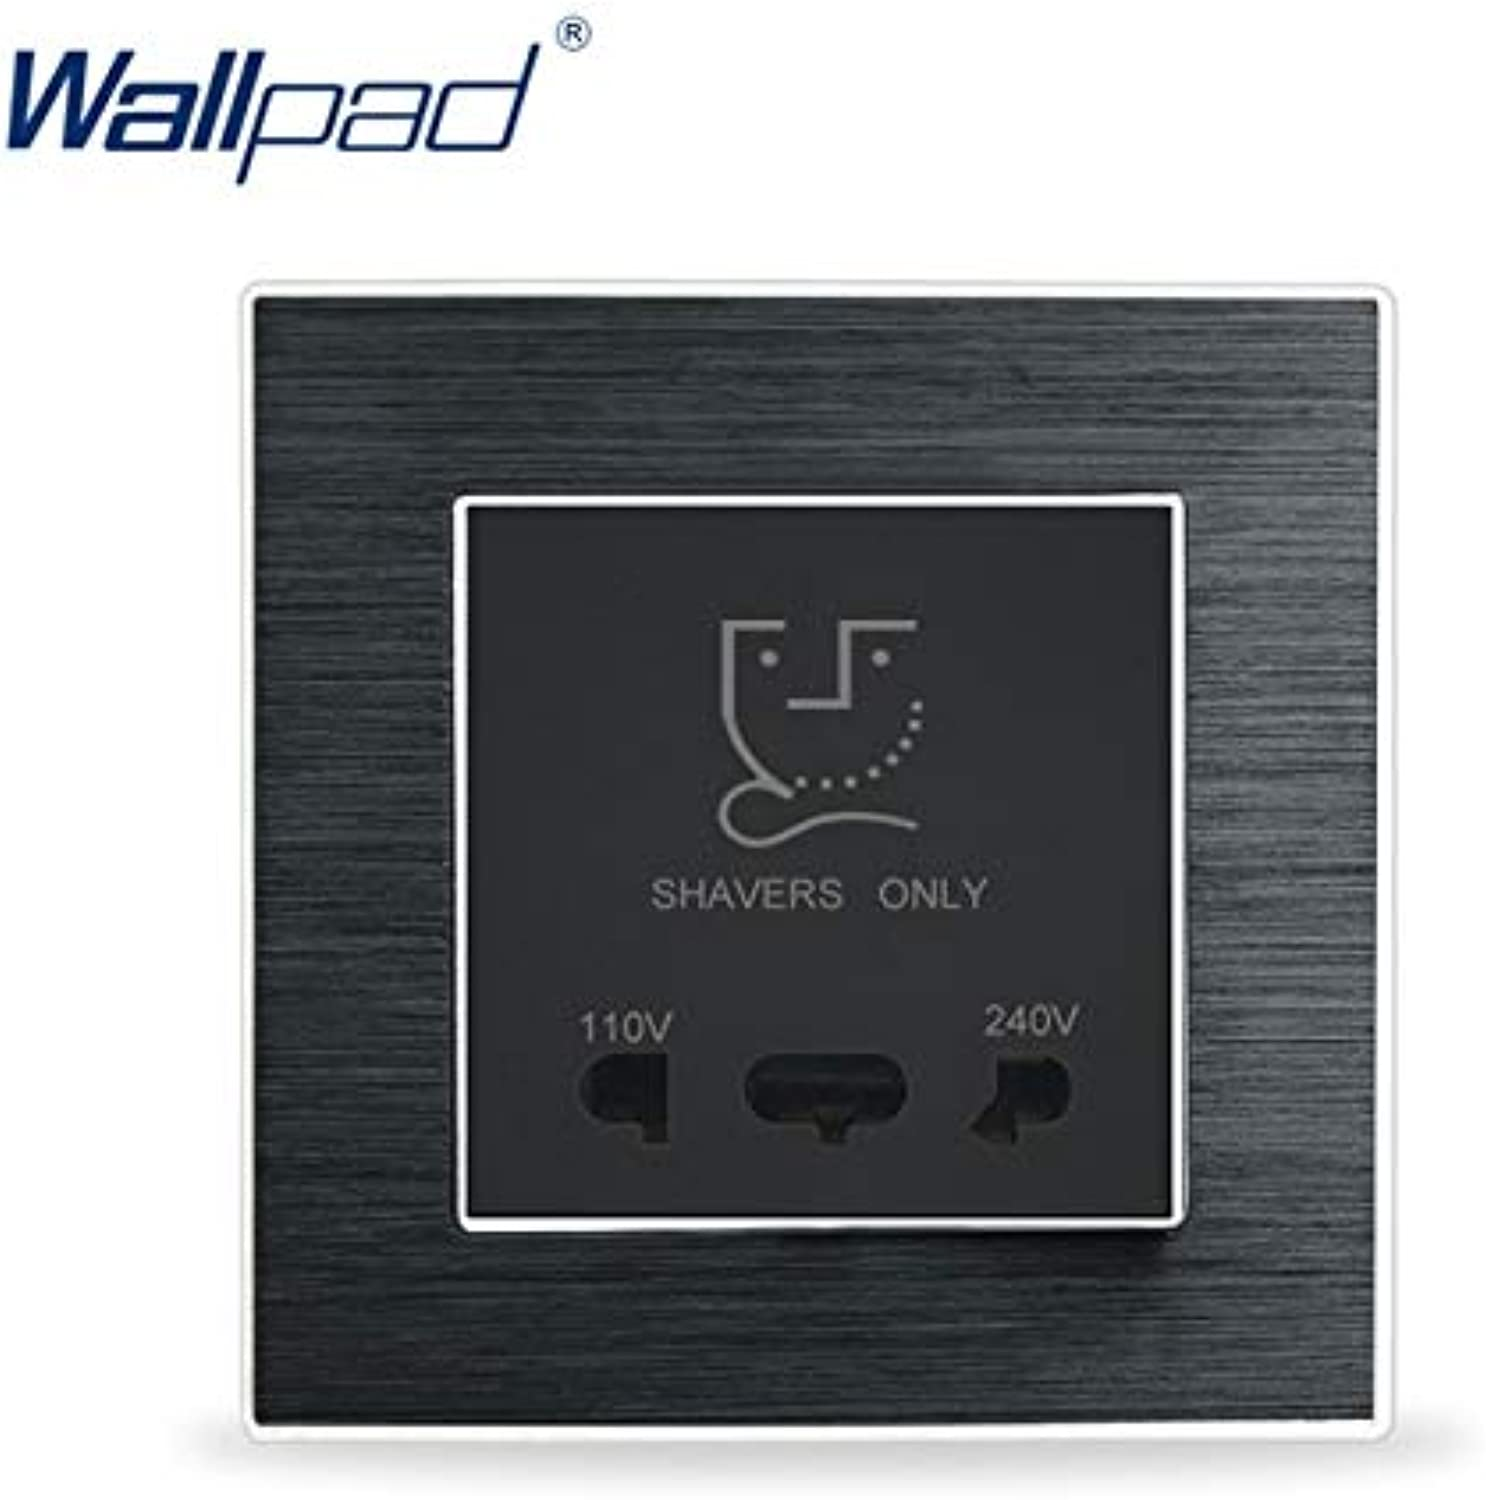 Shaver Socket Wallpad Luxury Satin Metal Panel Electric Wall Electrical Outlets for Home(color  Black)